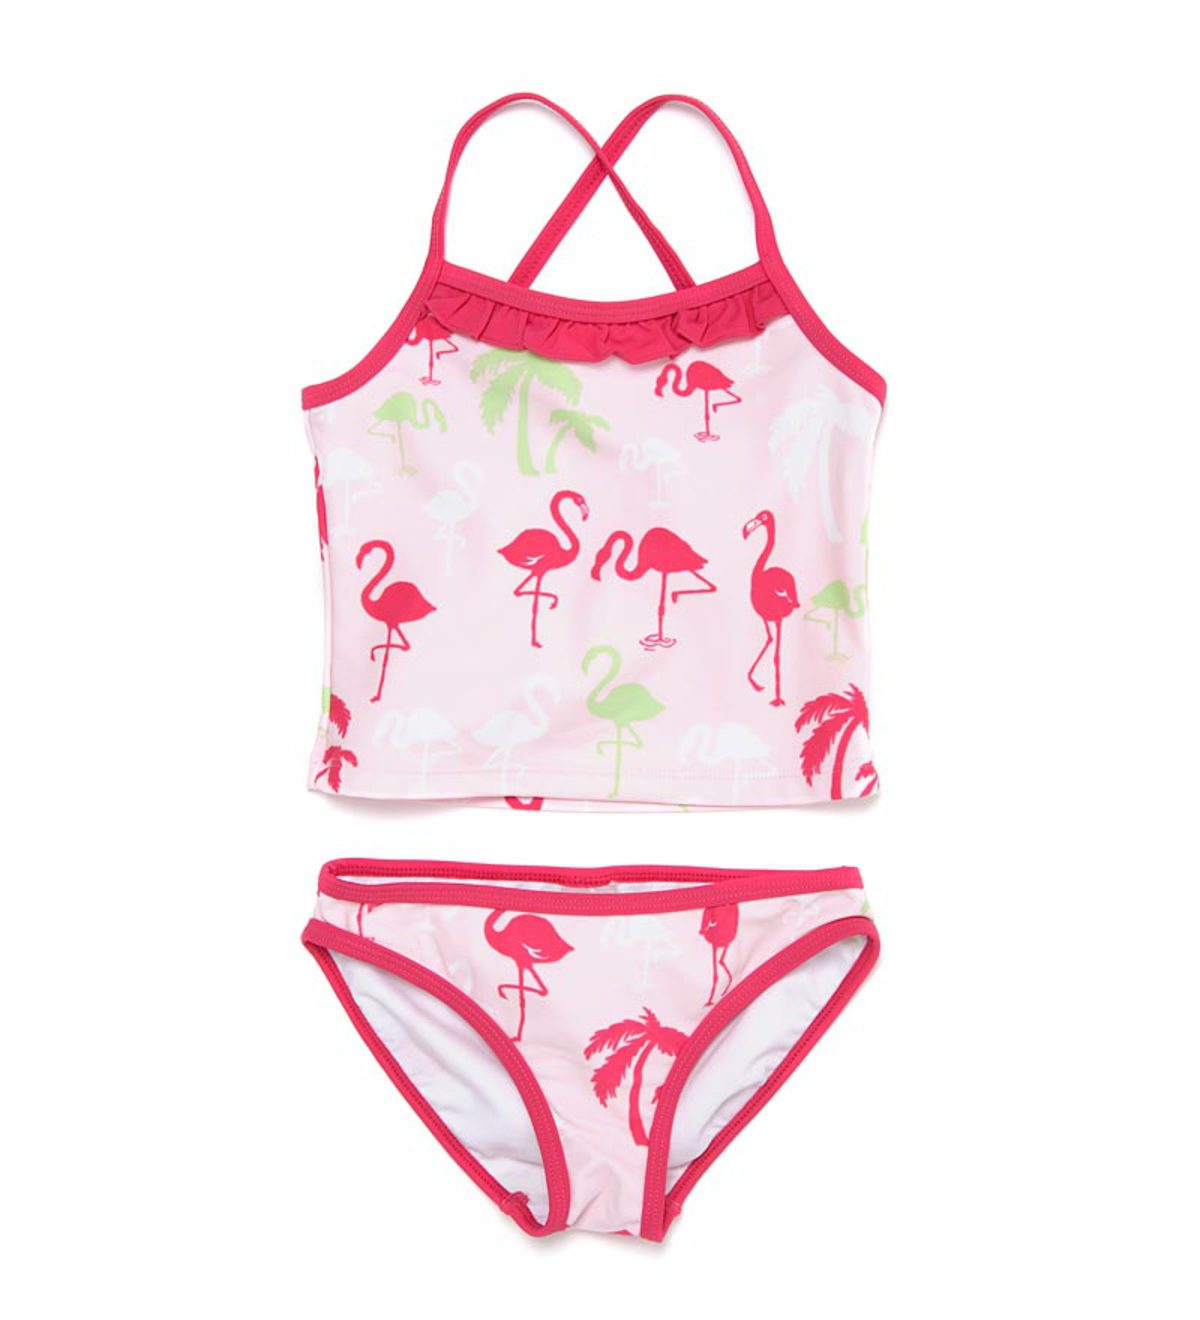 Criss-Cross Two-Piece Bathing Suit by Hatley